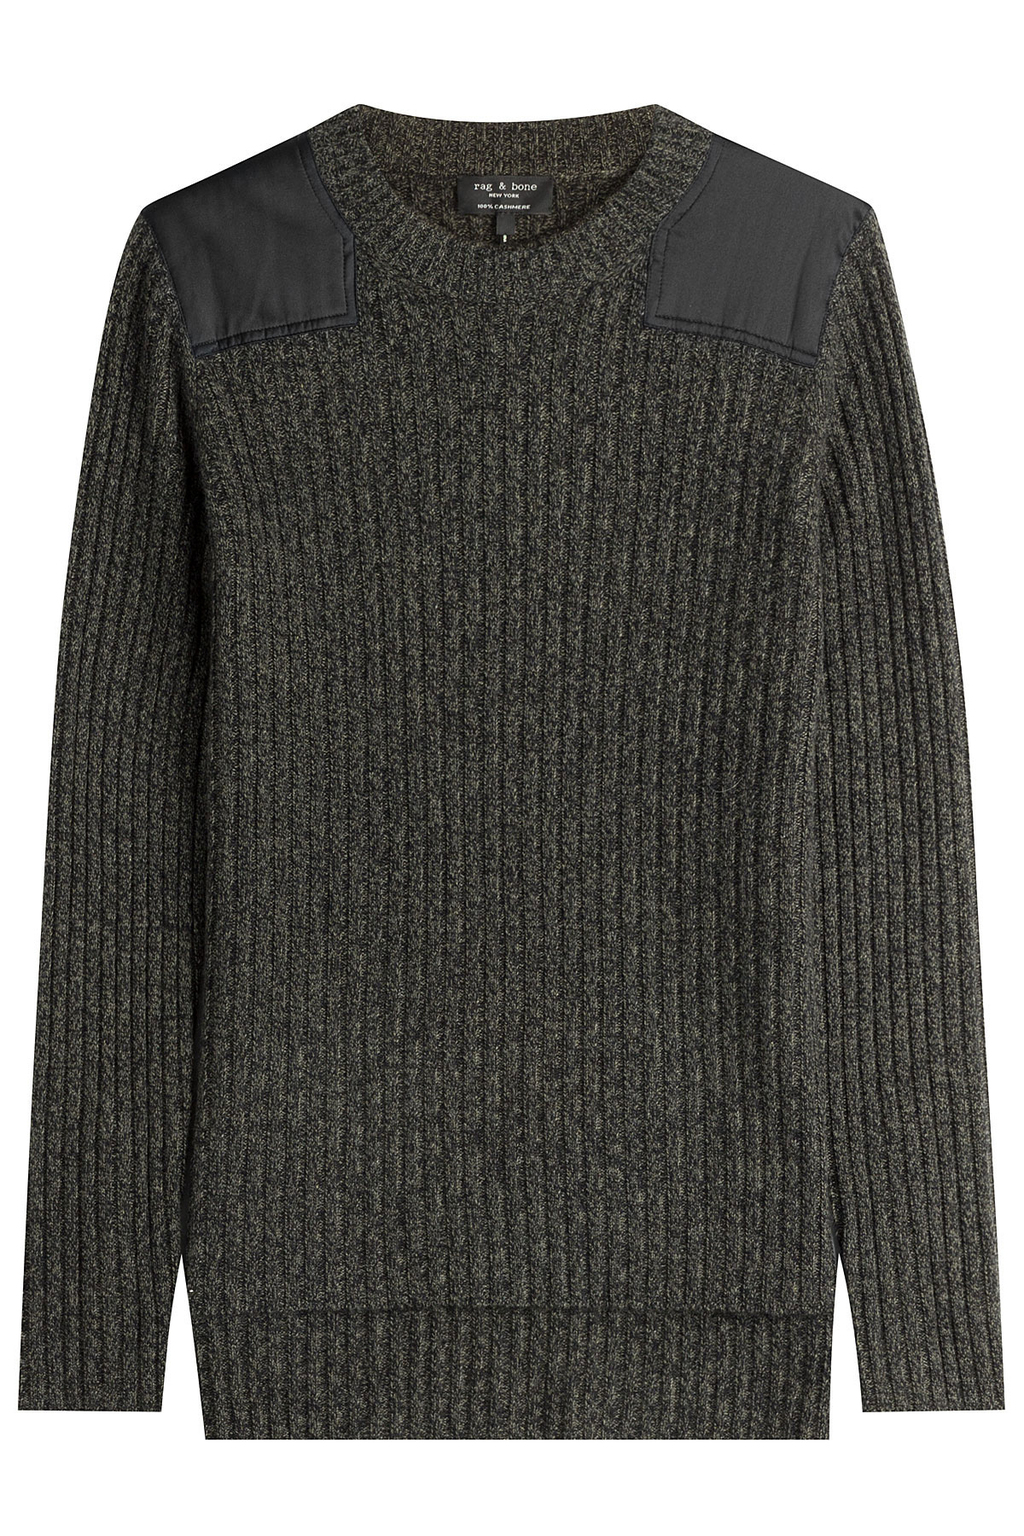 Ribbed Cashmere Pullover - pattern: plain; style: standard; predominant colour: charcoal; occasions: casual; length: standard; fit: standard fit; neckline: crew; fibres: cashmere - 100%; sleeve length: long sleeve; sleeve style: standard; texture group: knits/crochet; pattern type: knitted - other; season: a/w 2016; wardrobe: highlight; embellishment: contrast fabric; embellishment location: shoulder